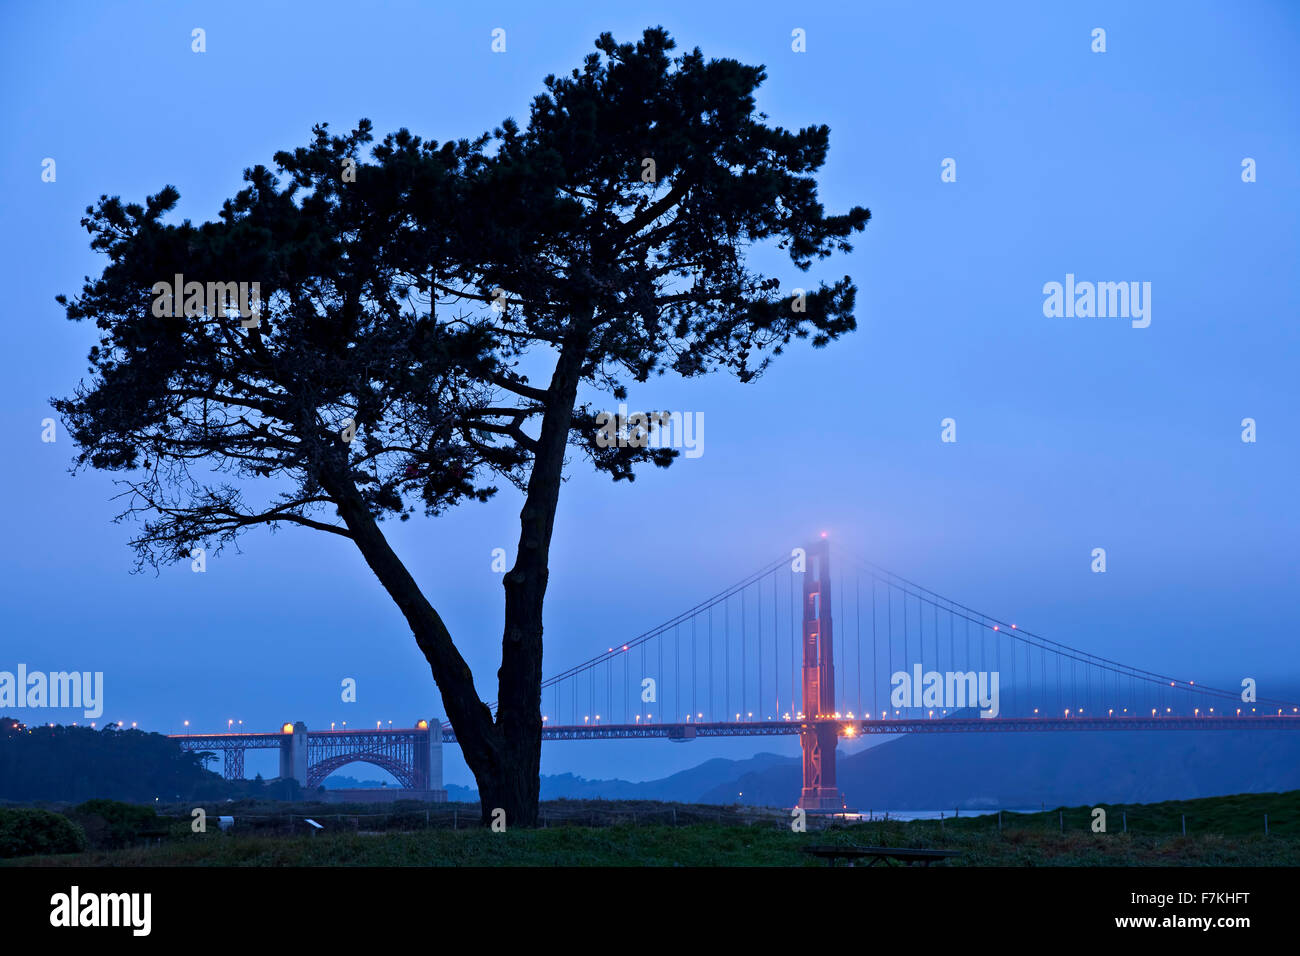 Tree and Golden Gate Bridge in fog, San Francisco, California USA - Stock Image